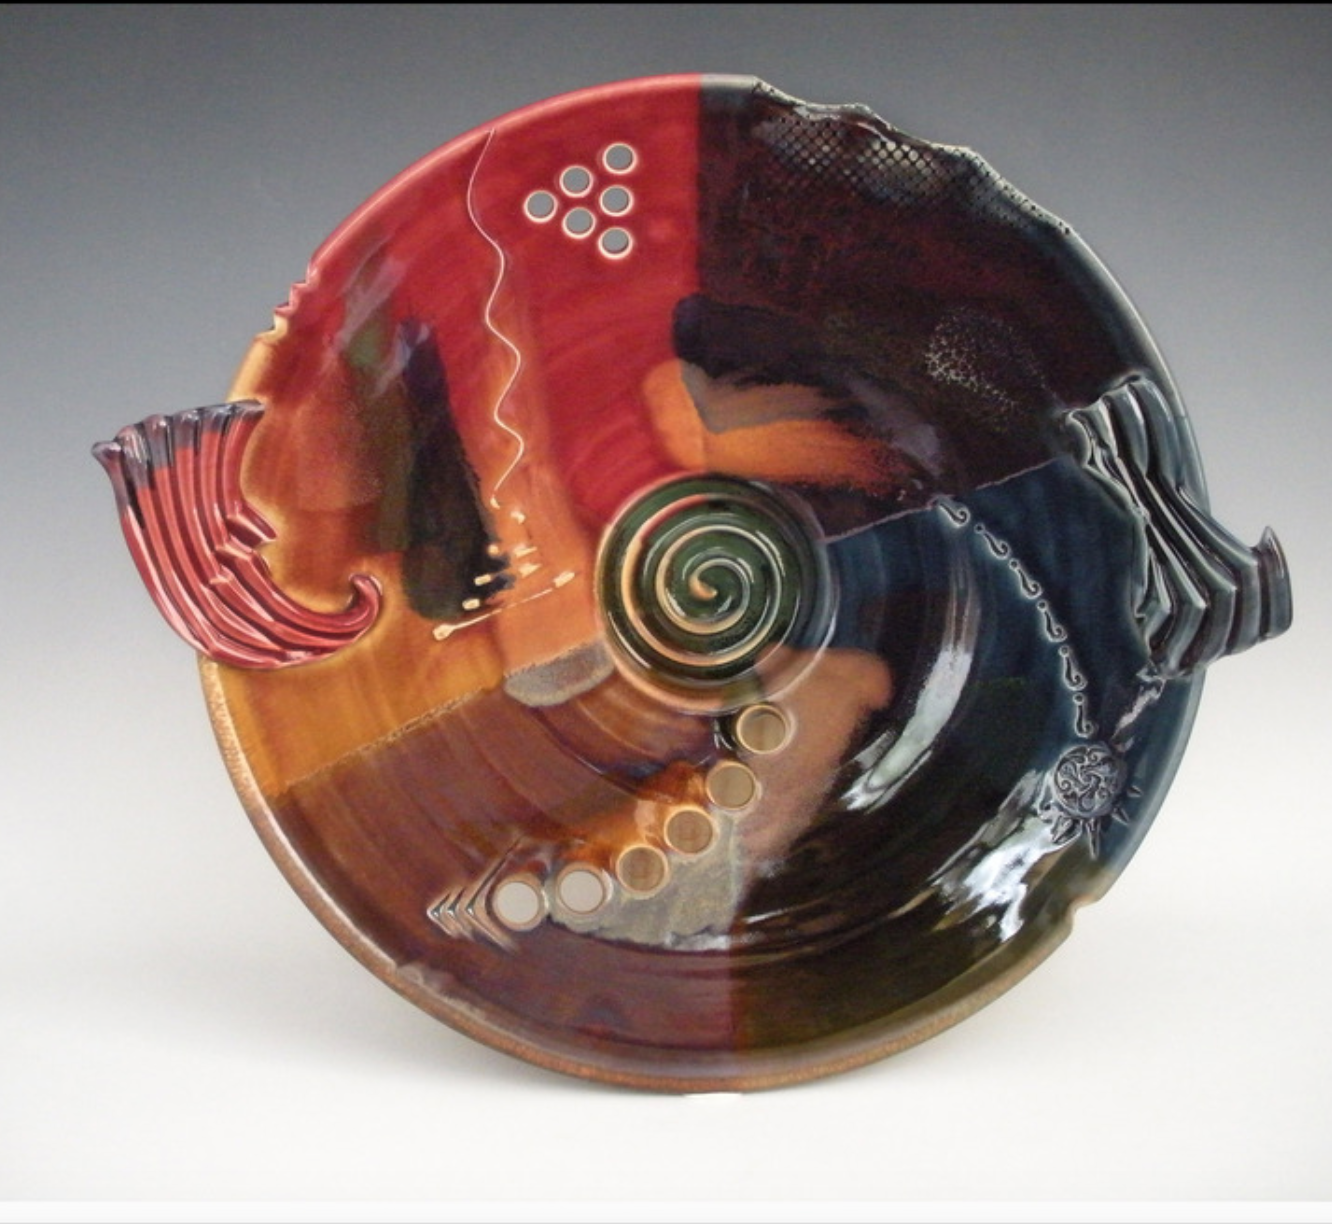 Daniel Marshall - My work is hand-thrown and hand-built porcelain. Each piece is glazed and high-fired in a gas kiln.